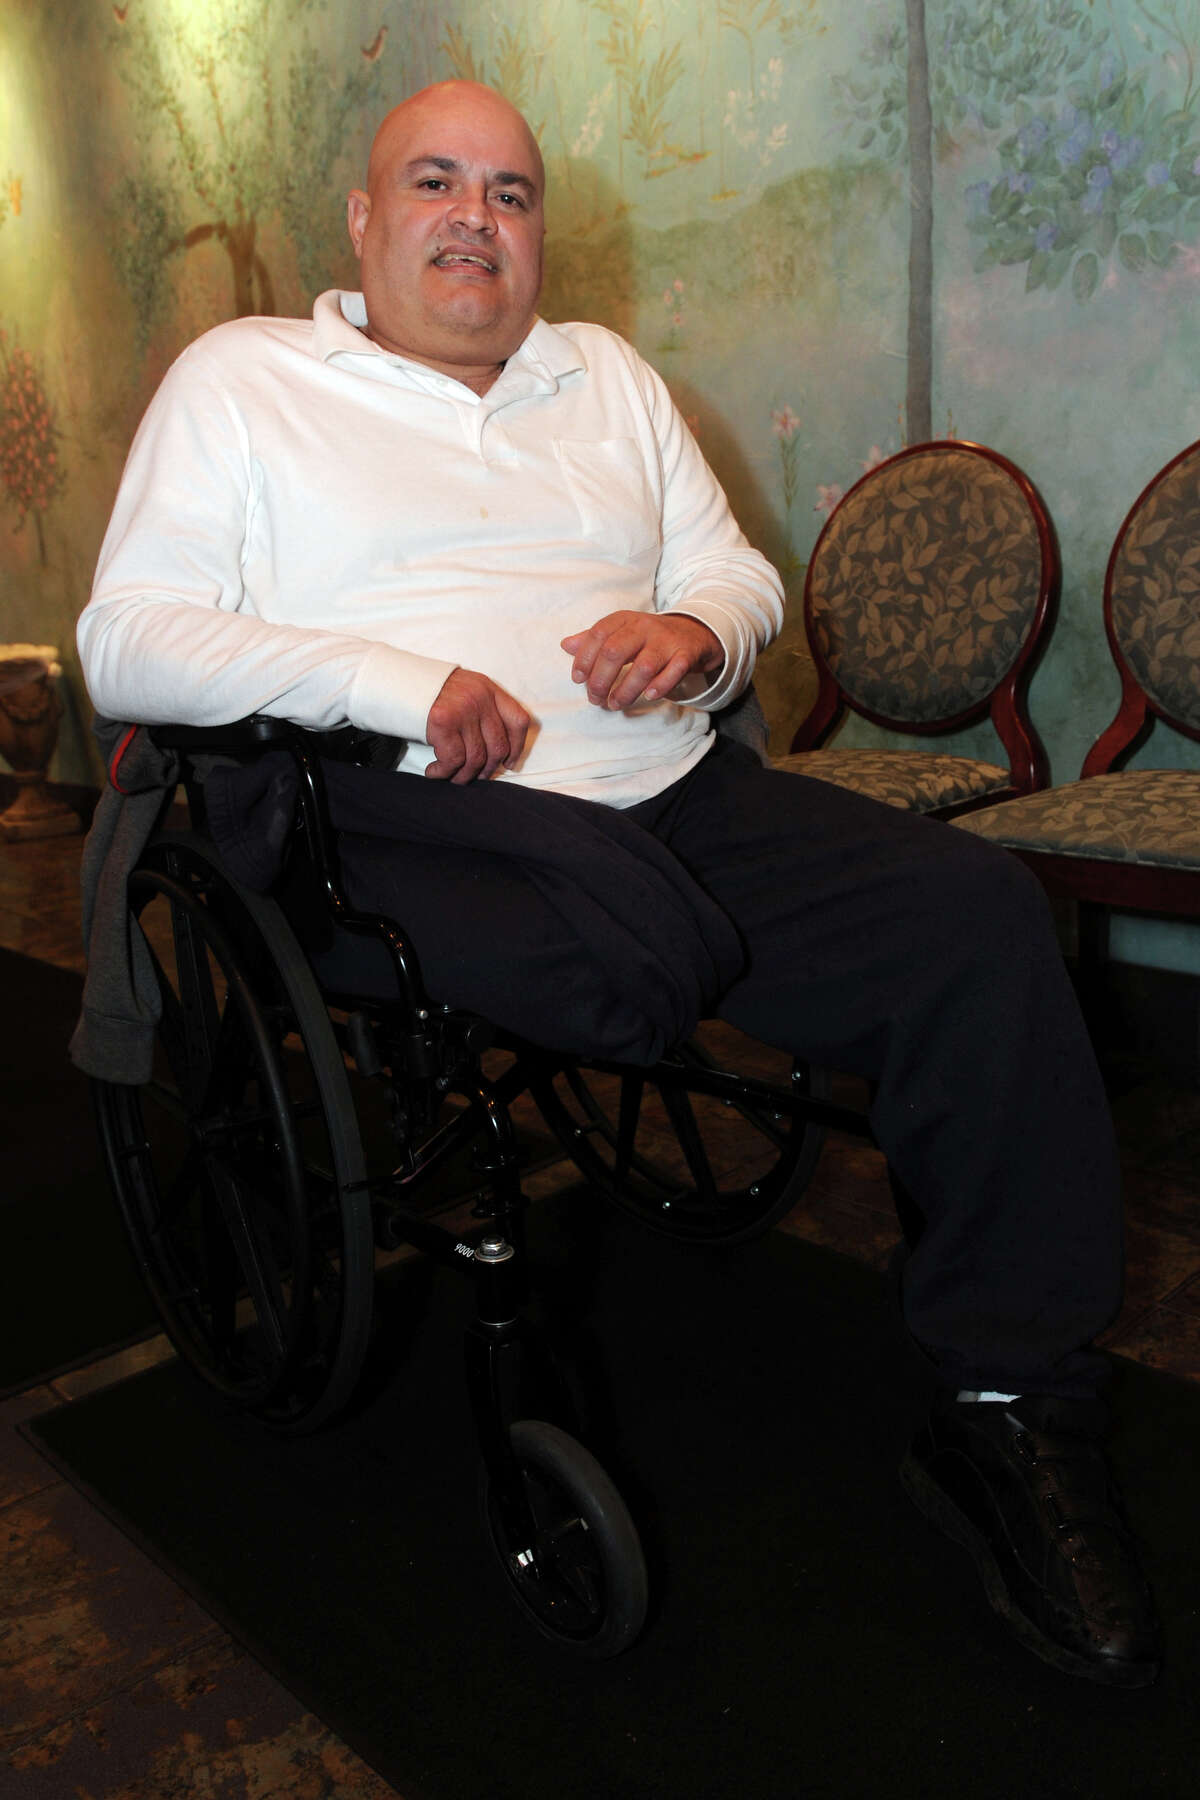 Melvin Gordils poses in Ralph âÄònâÄô RicheâÄôs Restaurant, in Bridgeport, Conn., March 12th, 2013 shortly after learning that a jury in Bridgeport Superior Court awarded him $16.2 million in his case against the State of Connecticut. Gordils was struck by a speeding state police cruiser in 2010. He lost a leg in the accident.